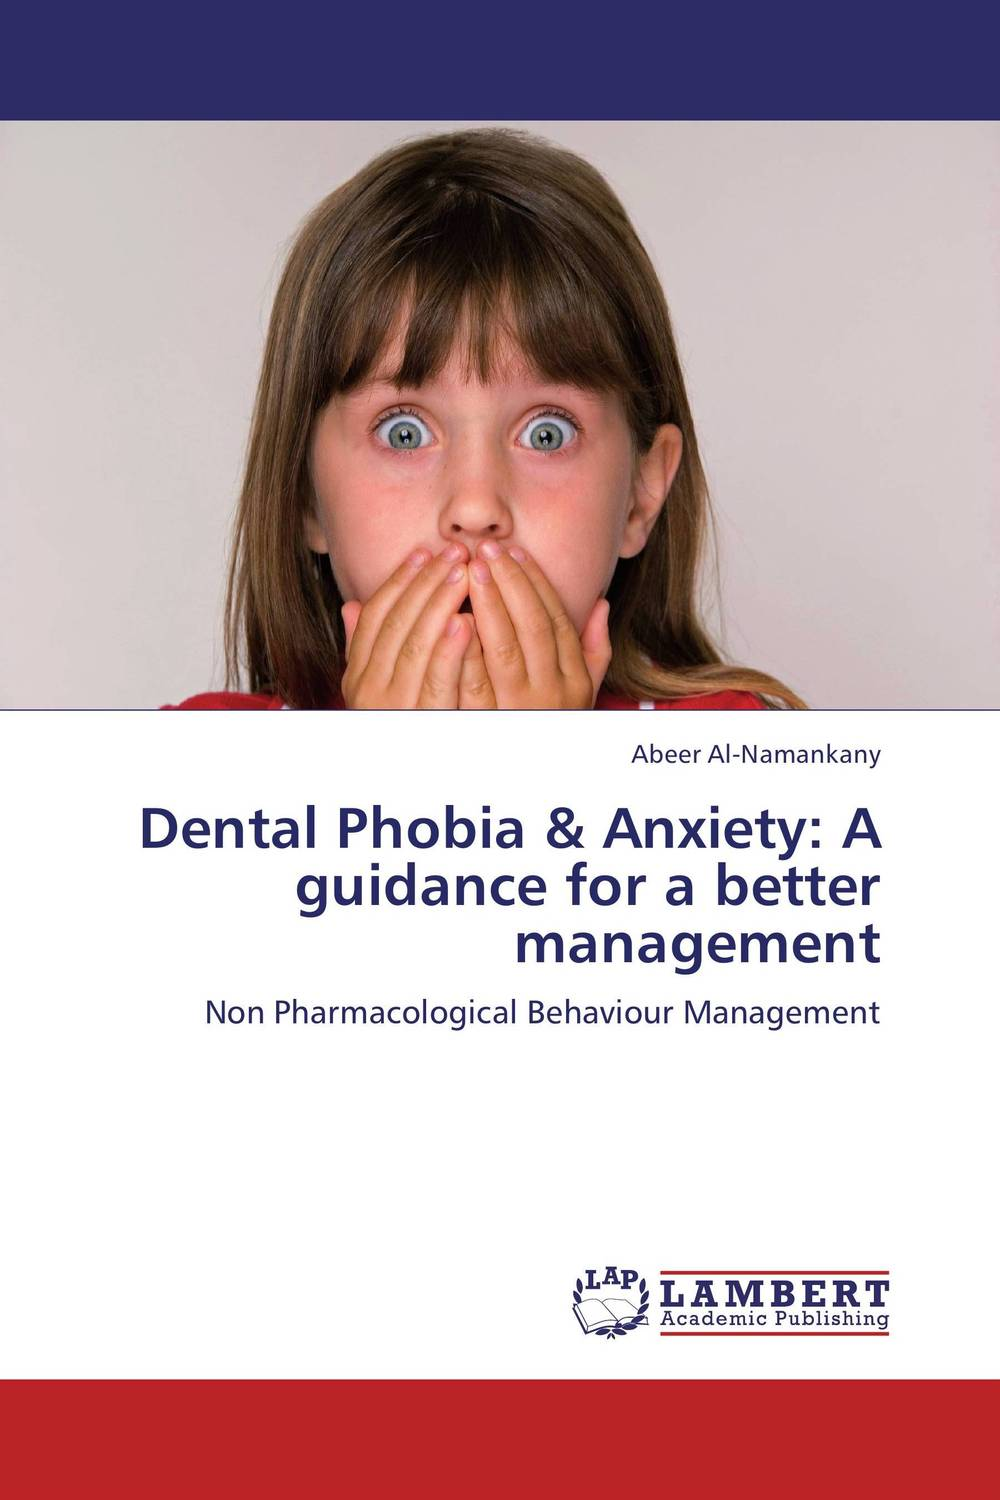 Dental Phobia & Anxiety: A guidance for a better management stefan hofmann g psychobiological approaches for anxiety disorders treatment combination strategies